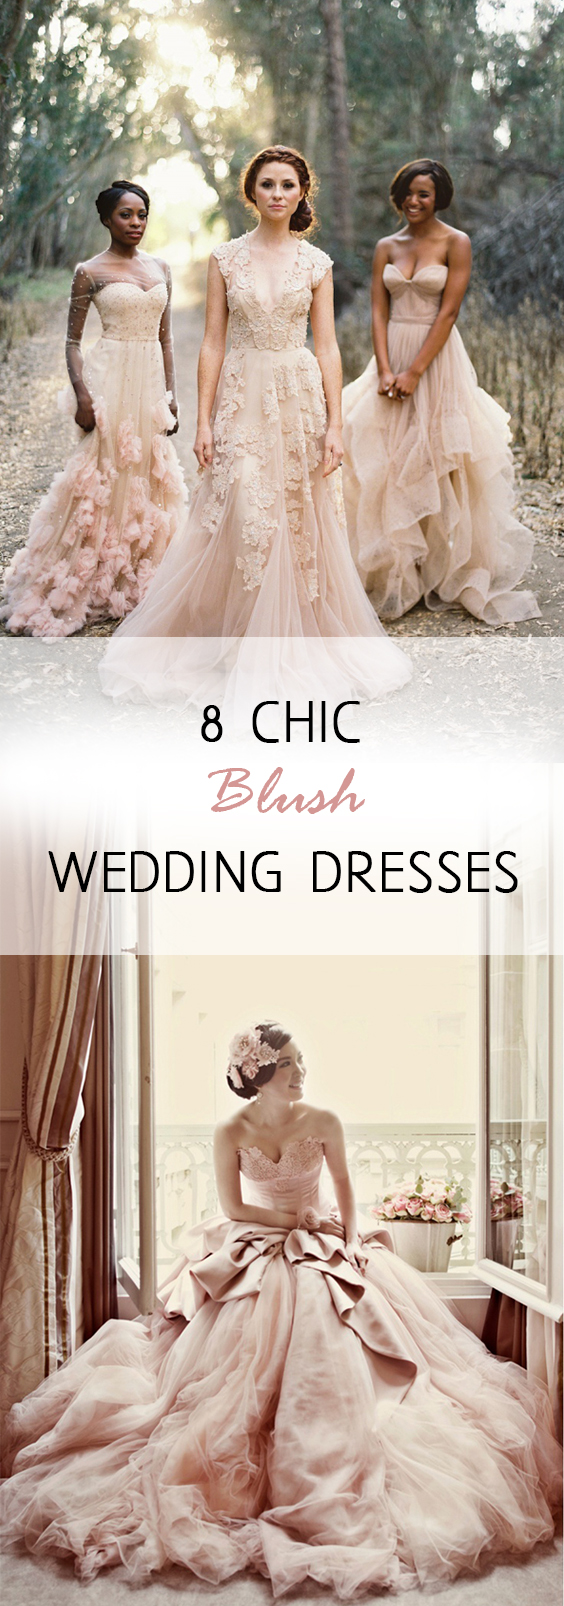 Wedding dresses, wedding dress inspiration, wedding dress hacks, wedding color schemes, wedding fashion, bridal fashion, popular pin, wedding hacks, wedding tips, dream weddings.